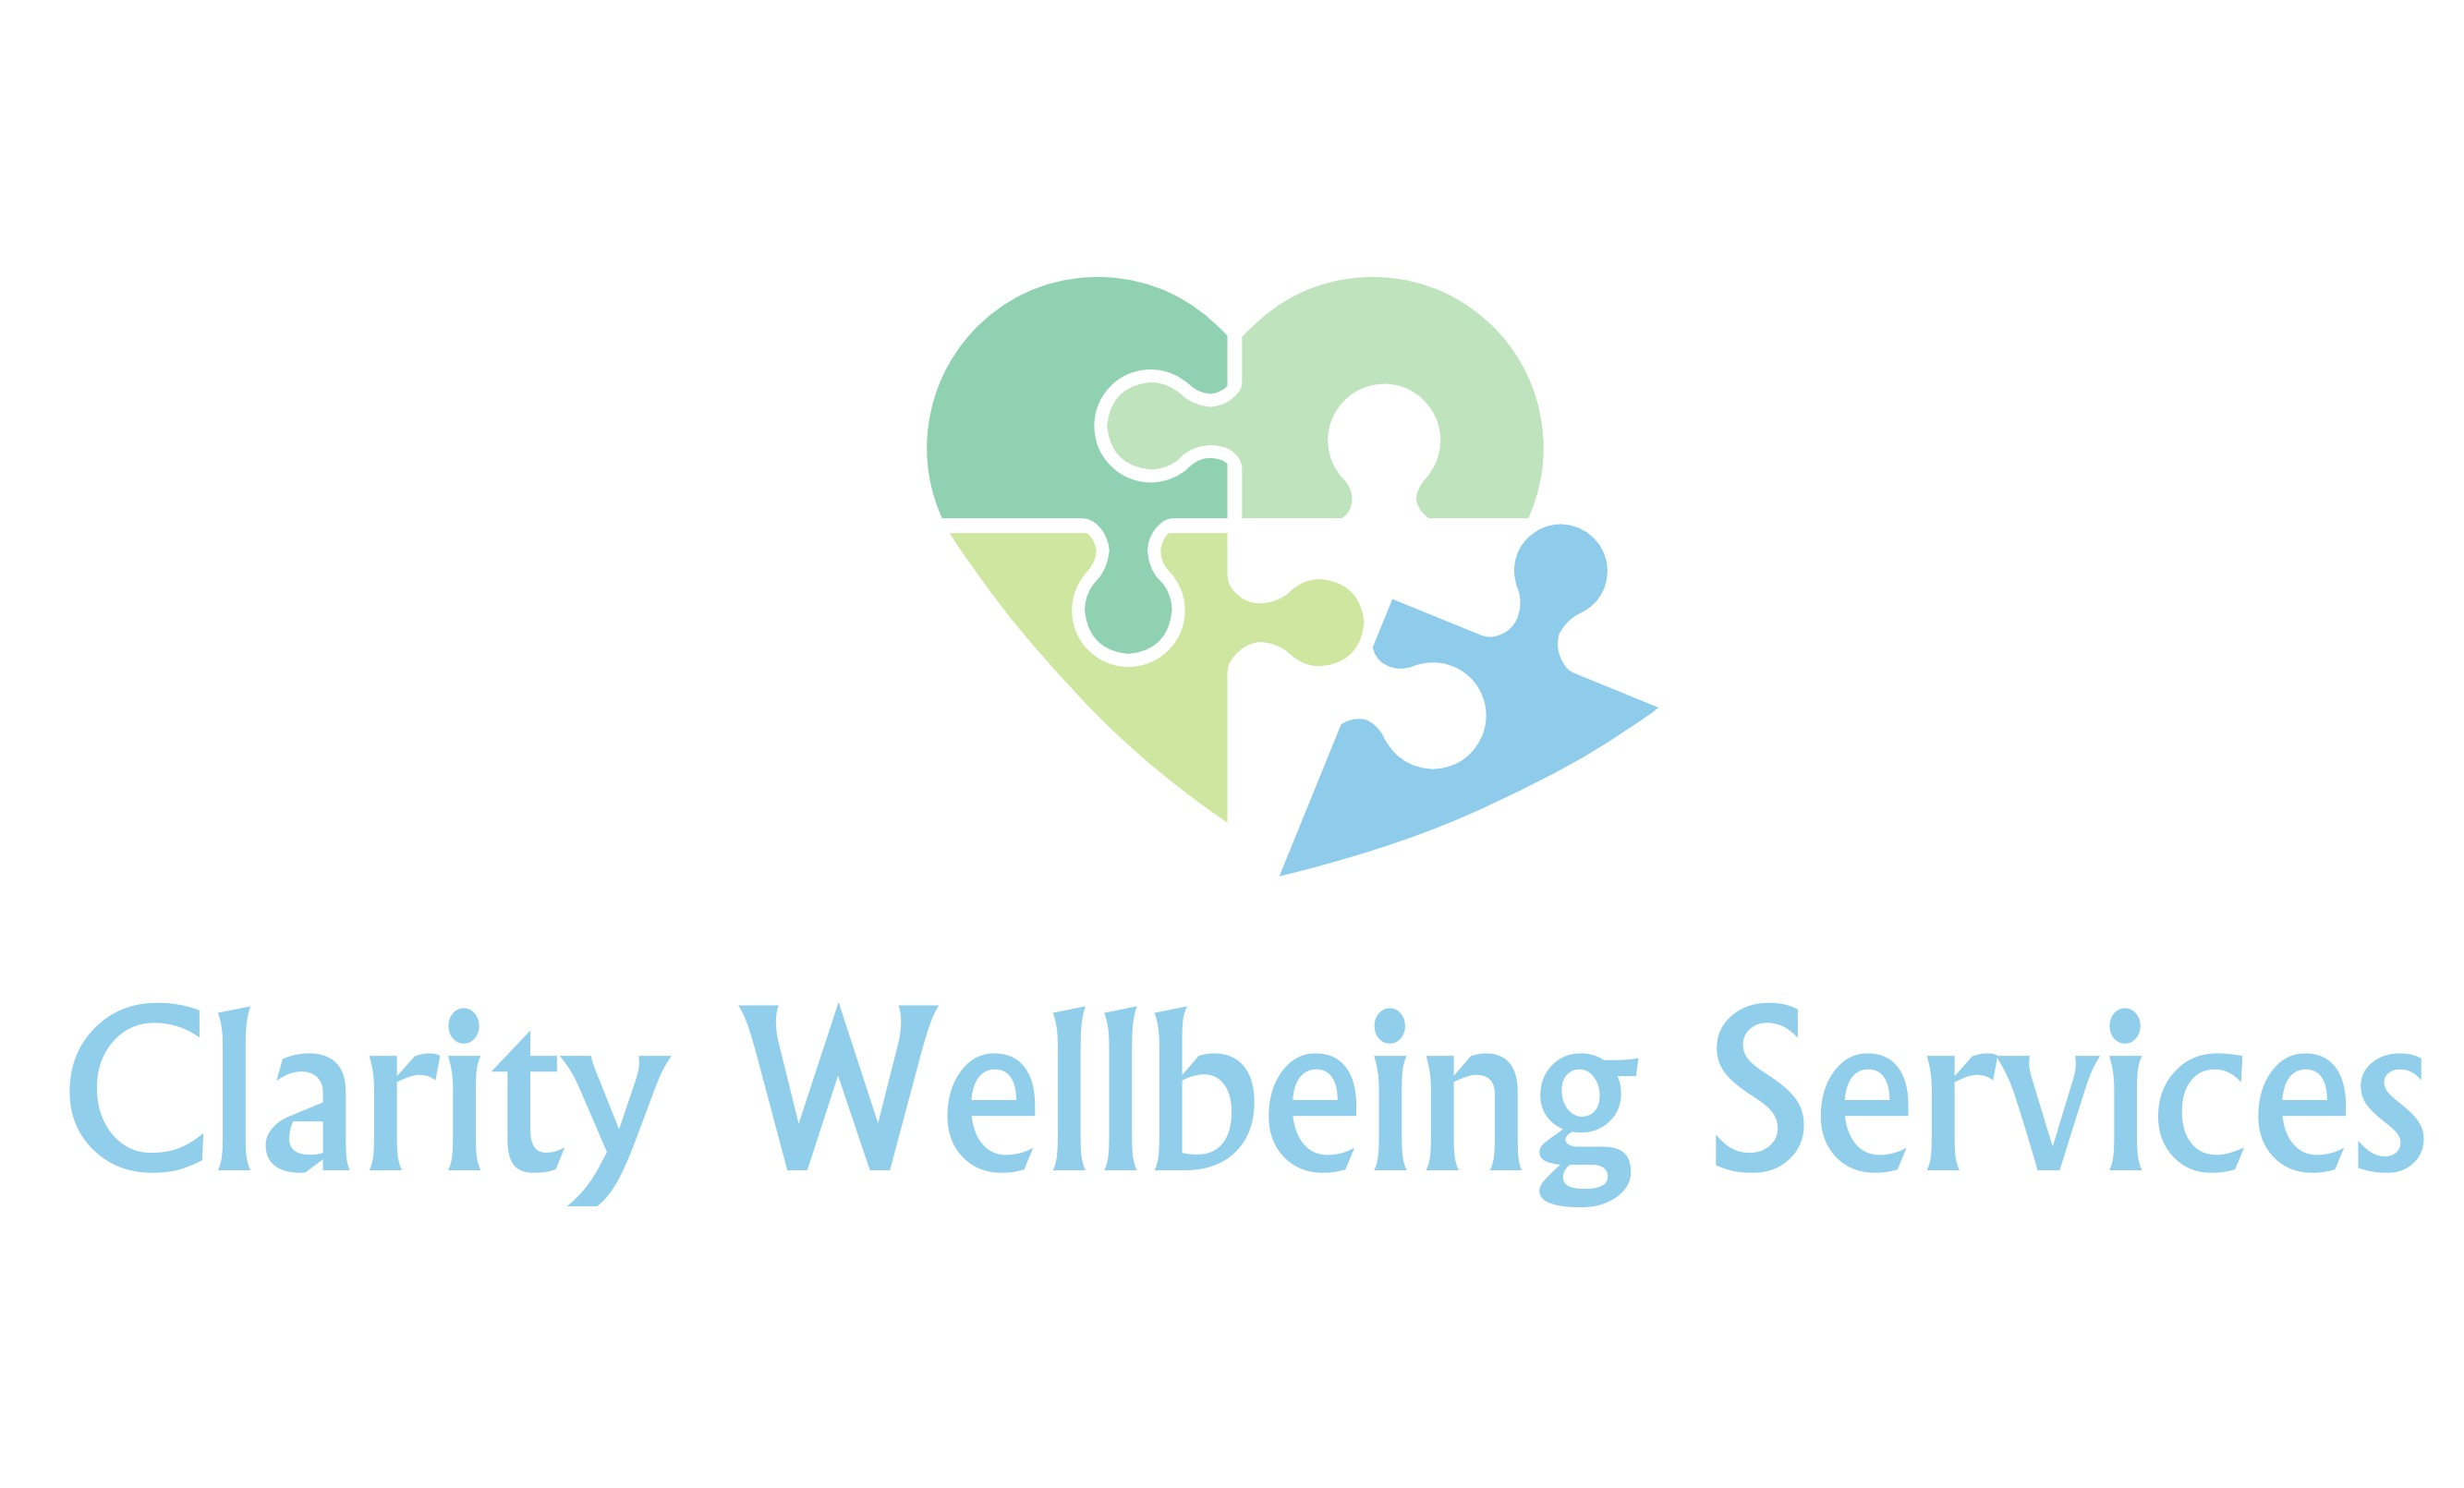 Clarity Wellbeing Services - Stowmarket, Suffolk IP14 4SB - 01449 781181 | ShowMeLocal.com